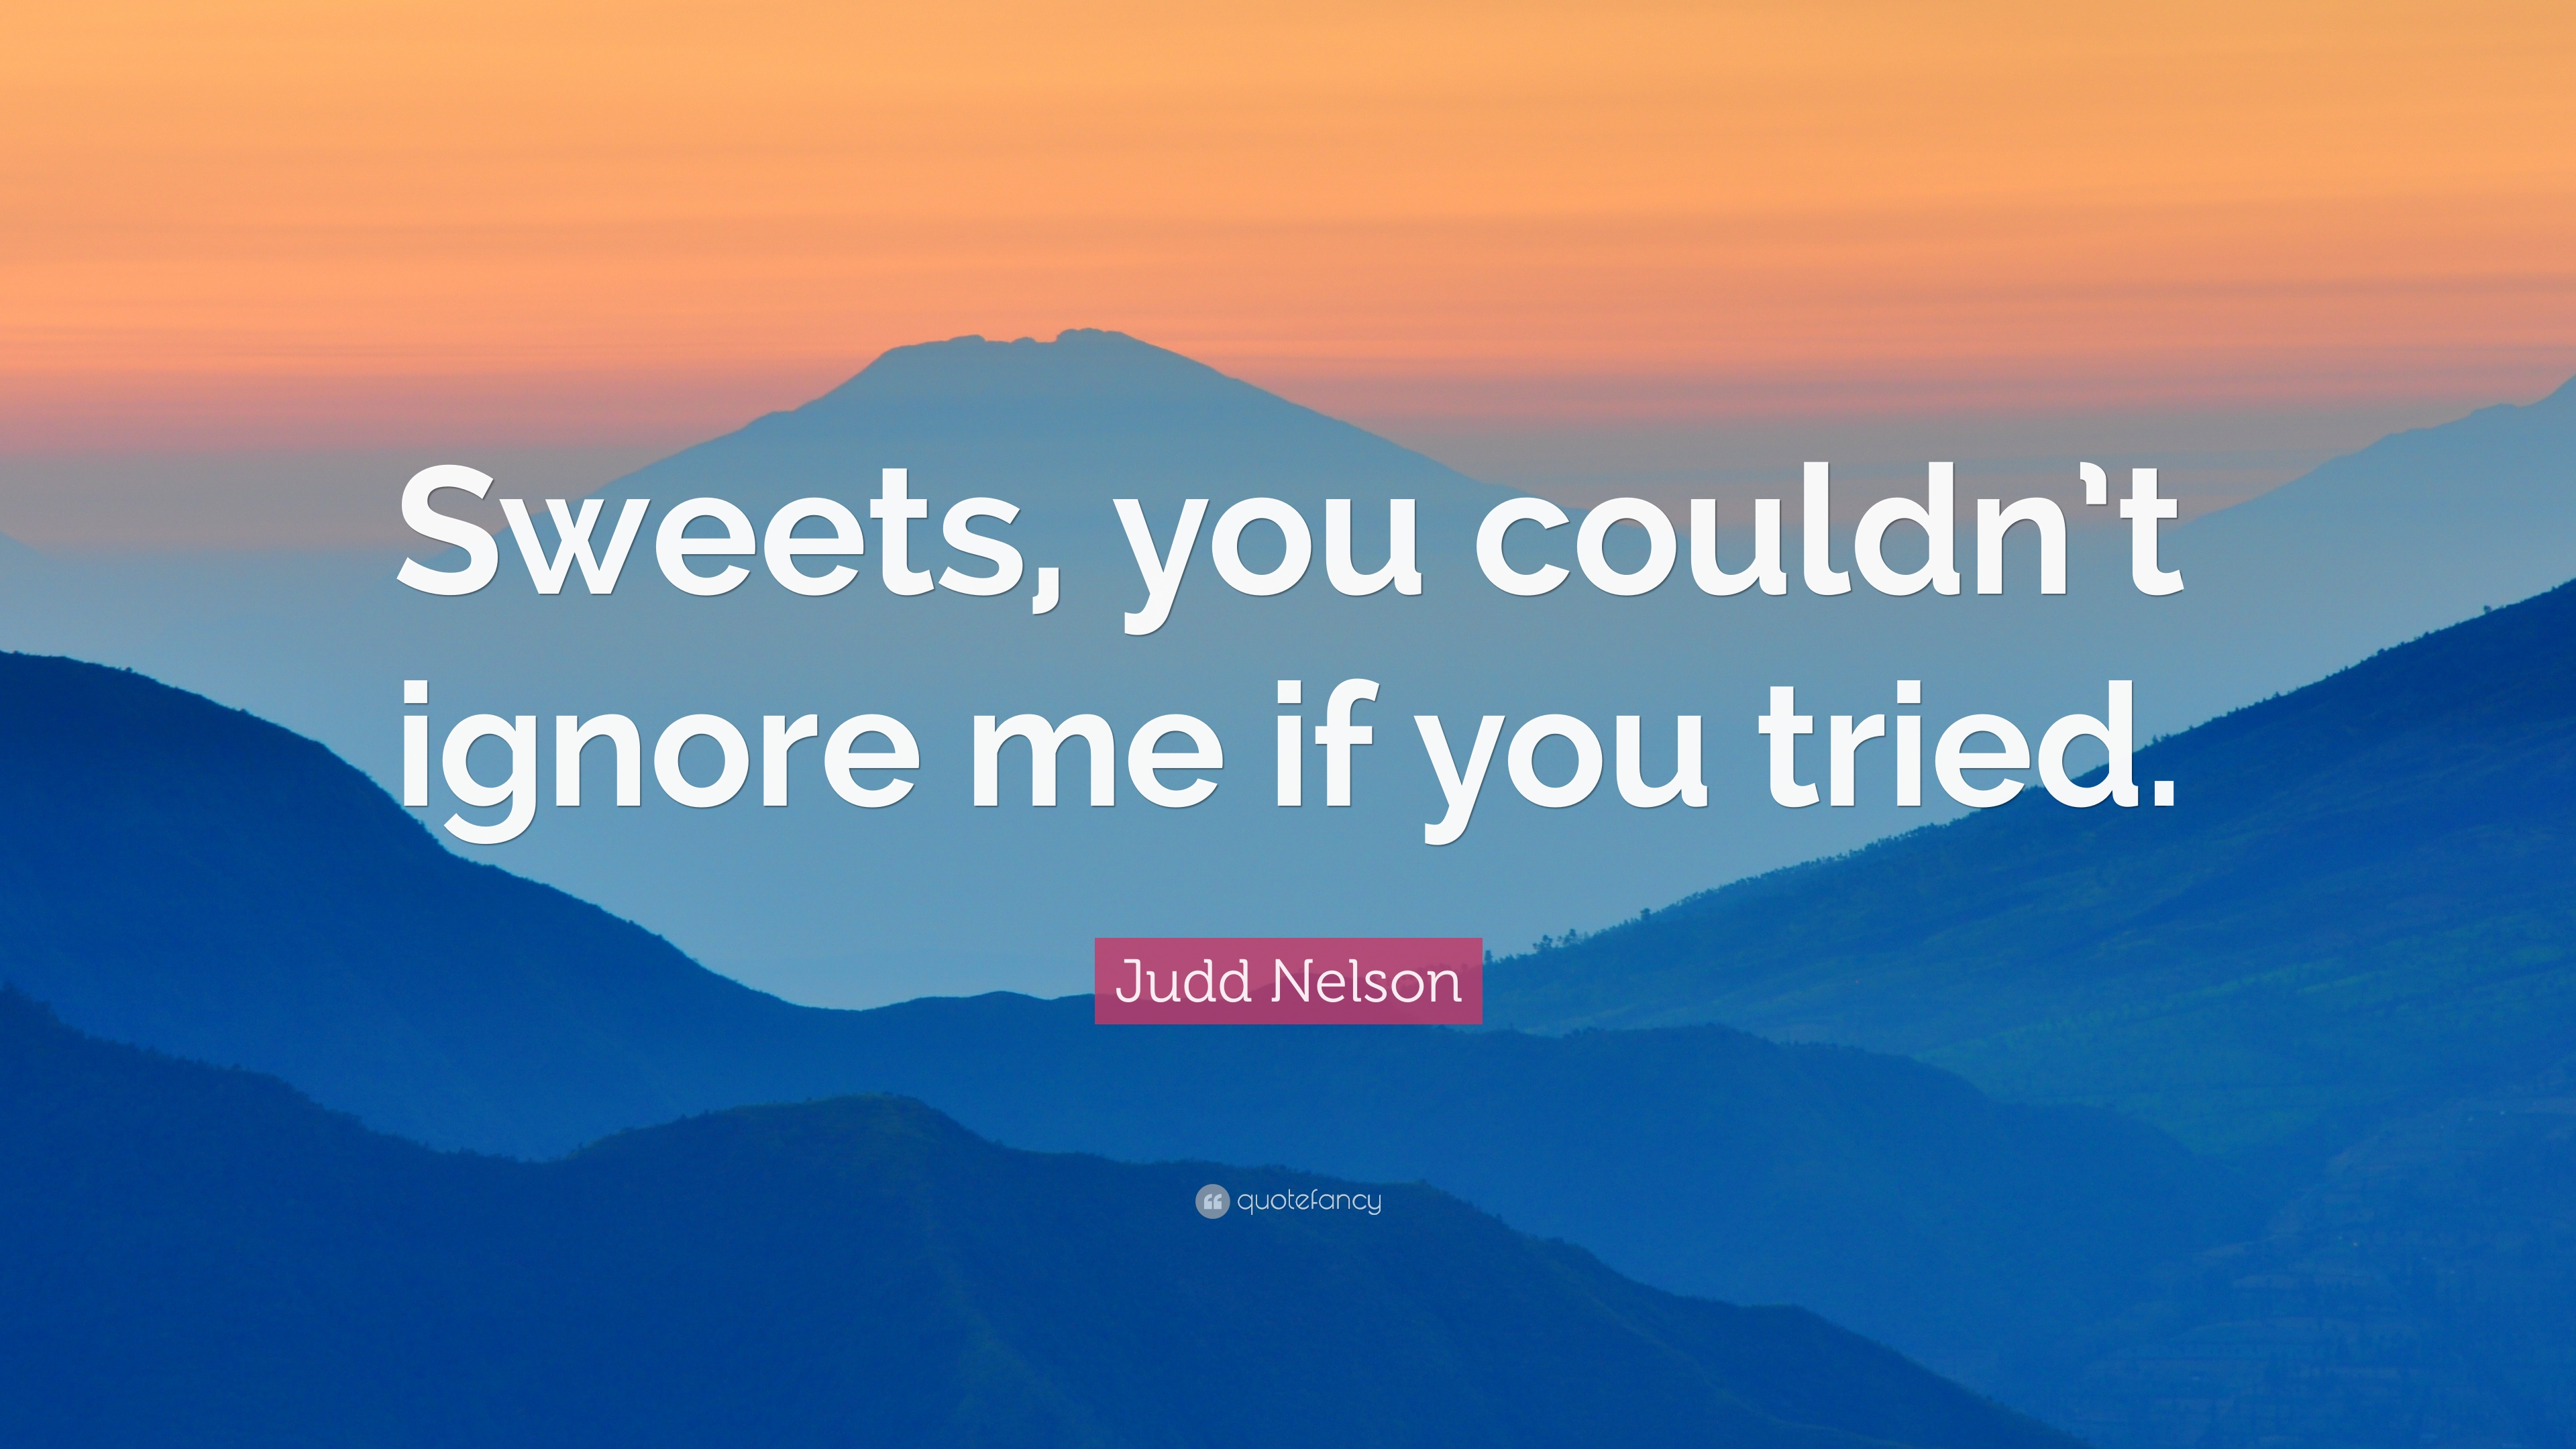 judd nelson quotes (37 wallpapers) - quotefancy